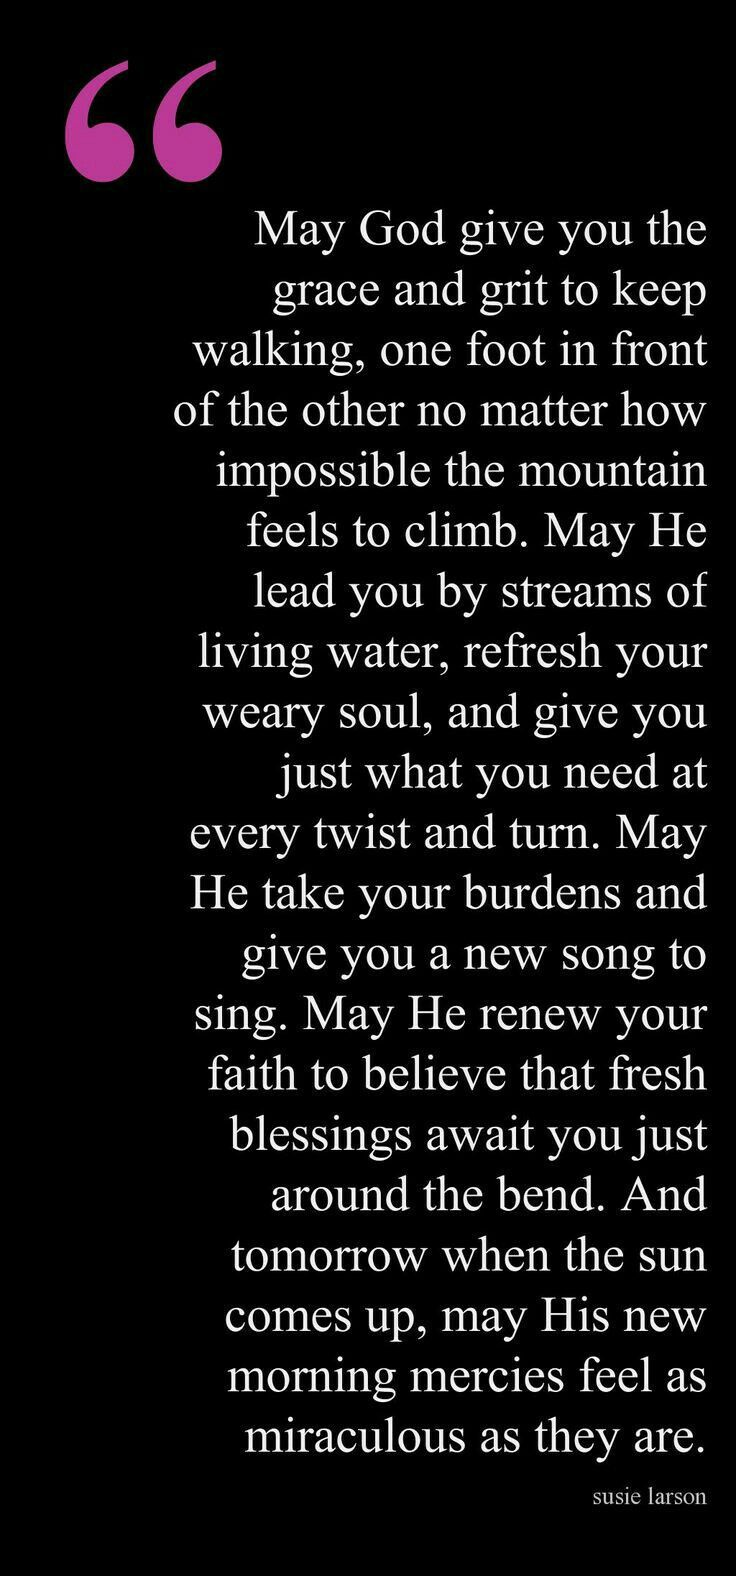 May God give you the grace...